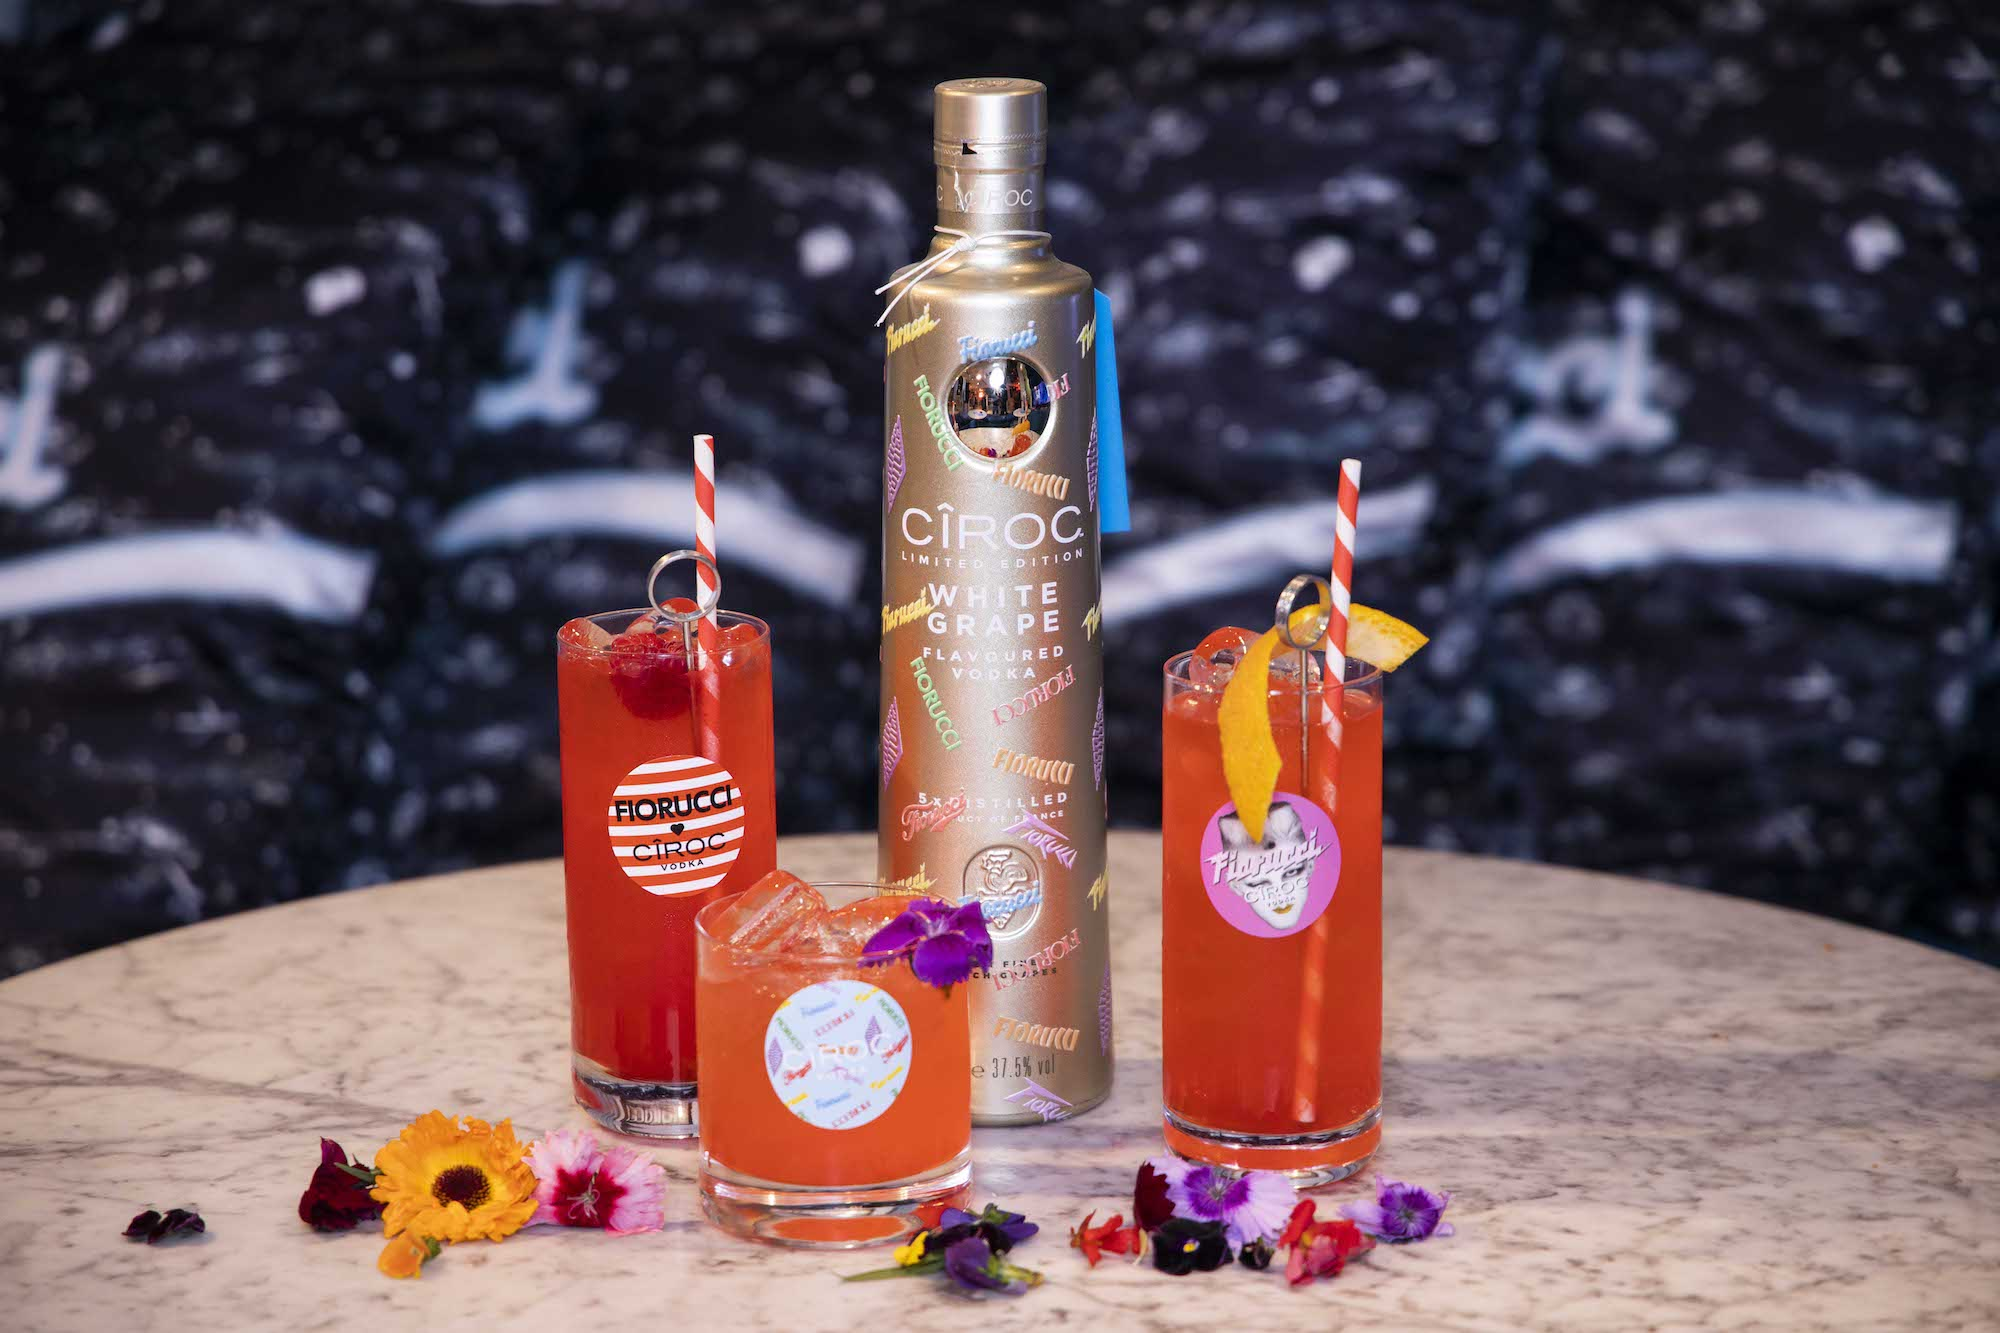 CIROC x FIORUCCI collaboration bottle and drinks